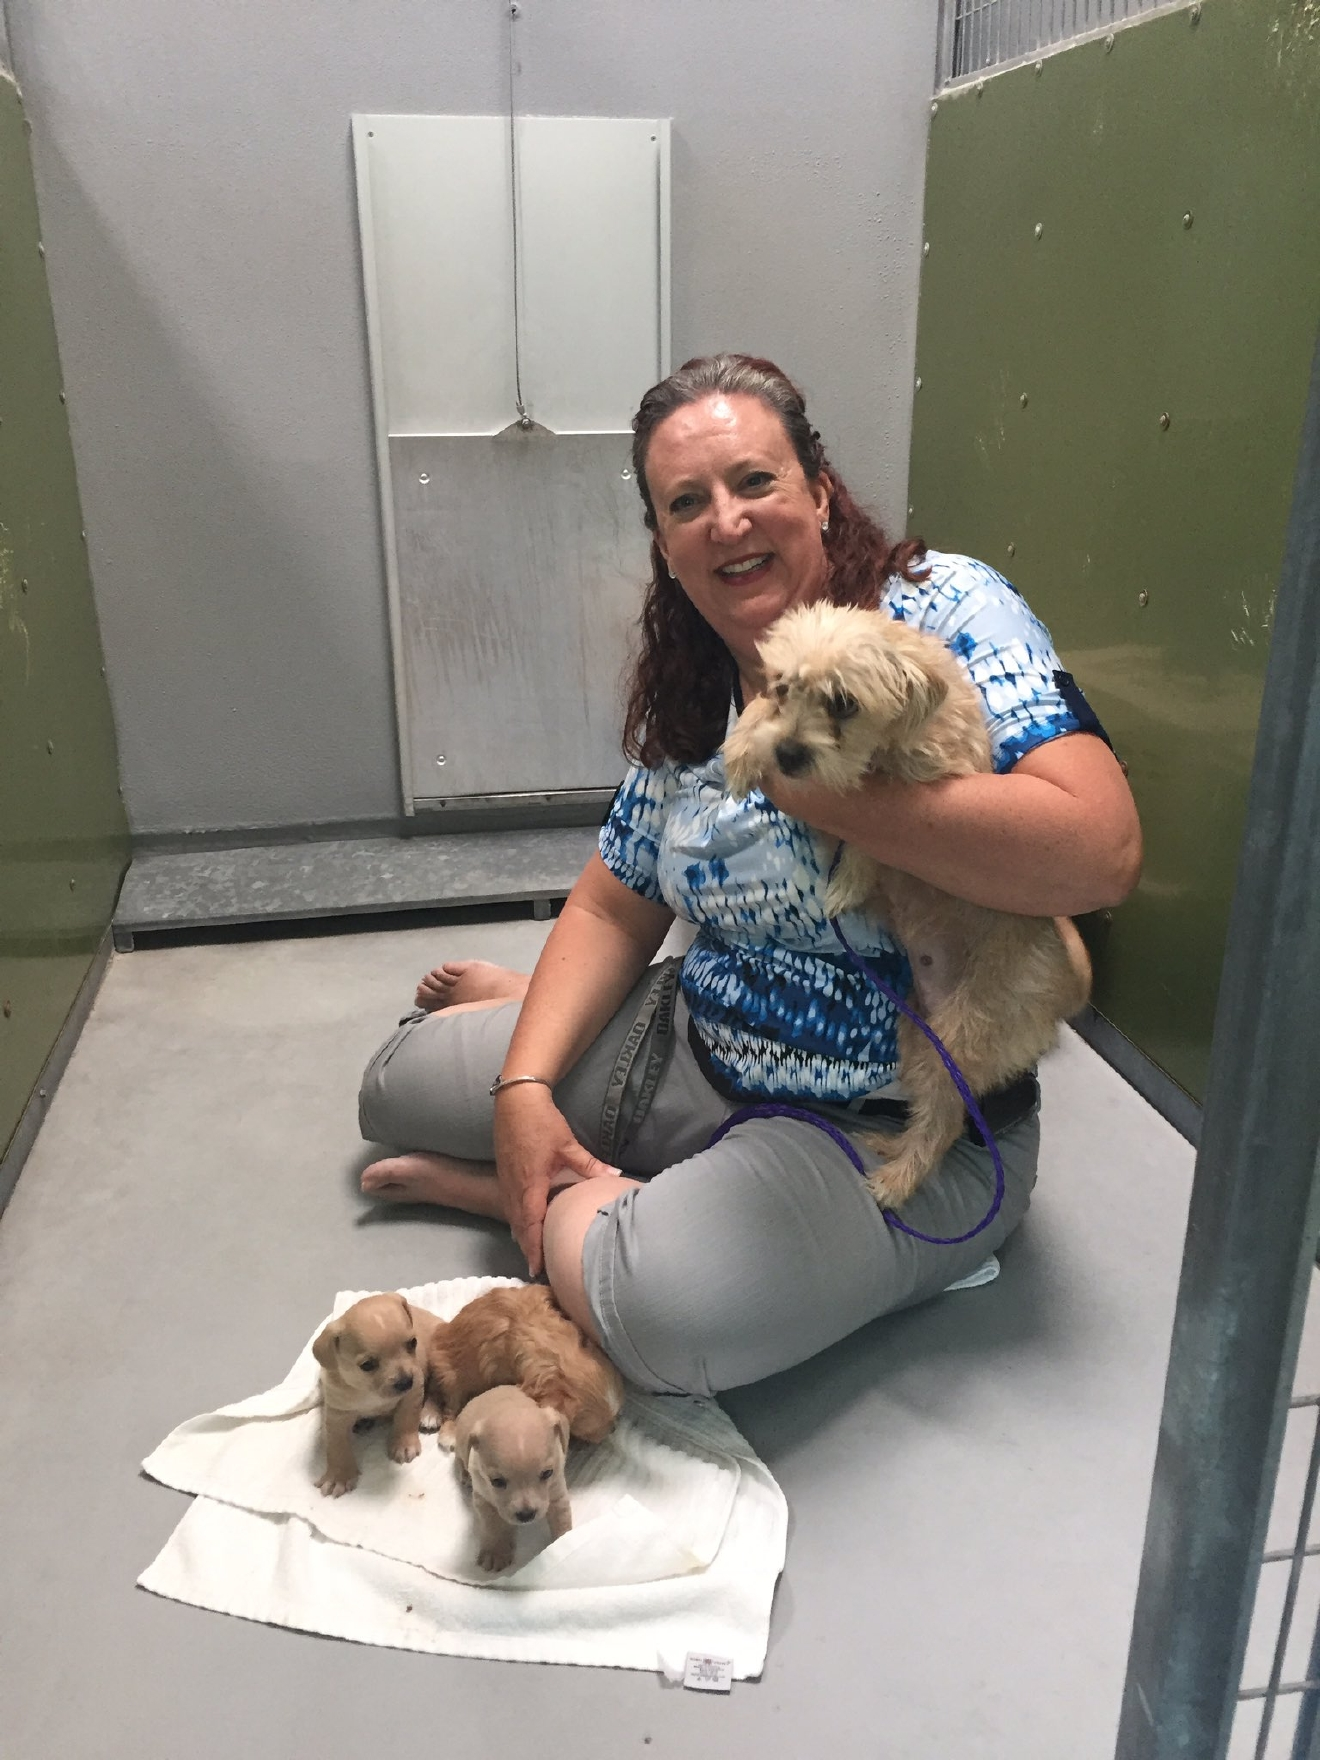 Local hero Polly Williams has helped hundreds of animals in the community find new homes (Chloe Beardsley | KSNV)